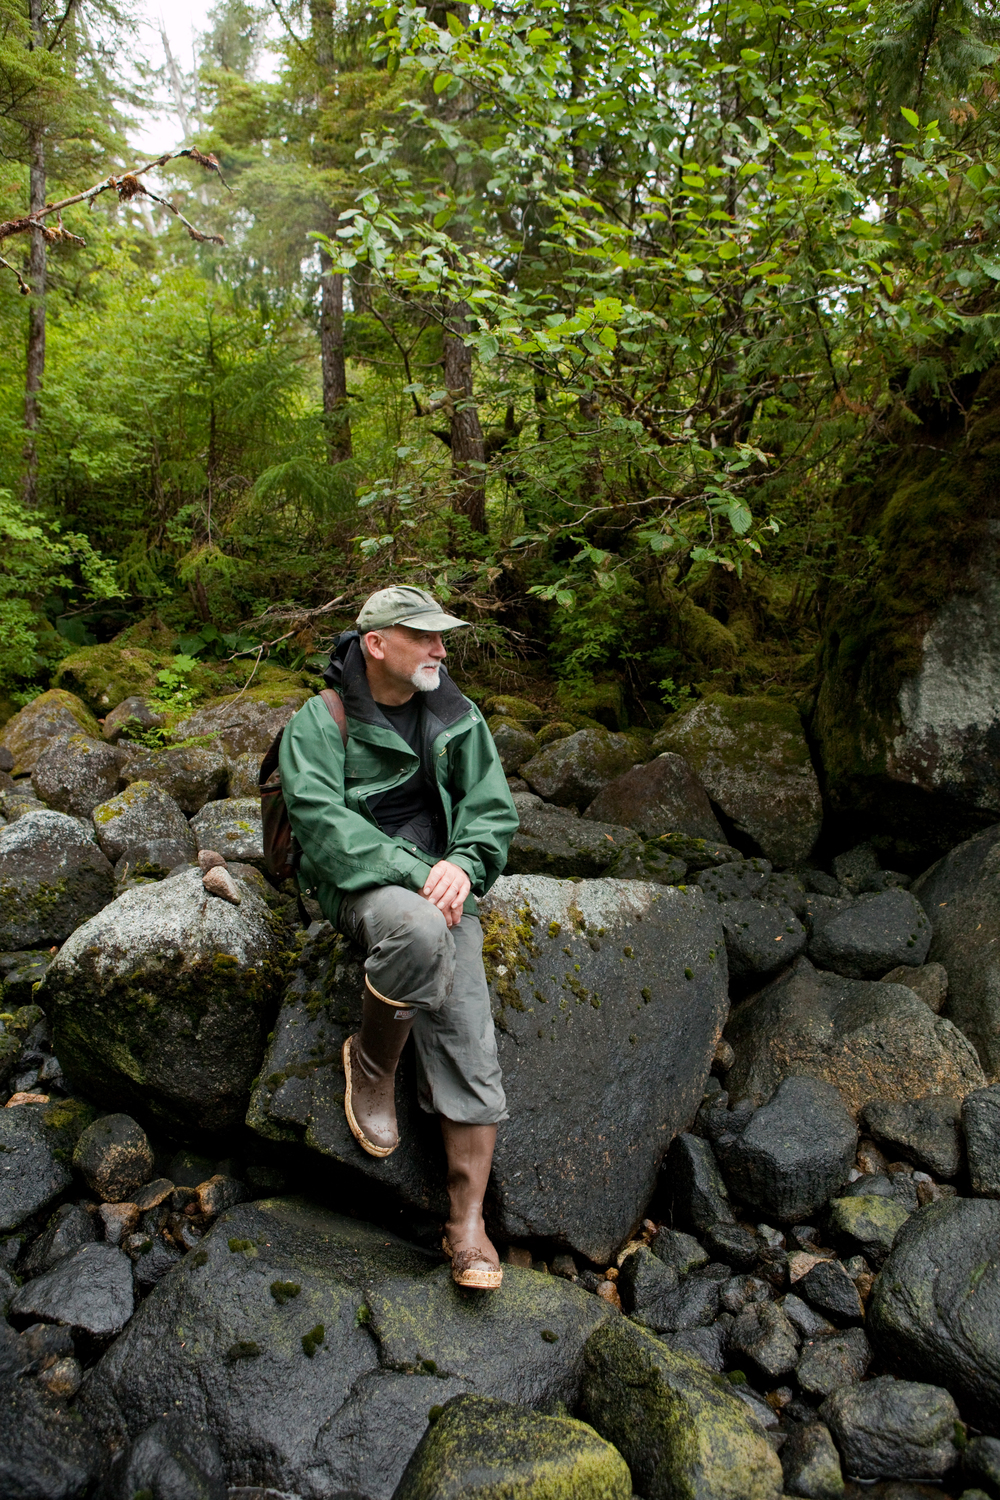 Frank Barnes of the Sitka Ranger District and the USDA Forest Service.  South Baranof Island Wilderness Area.